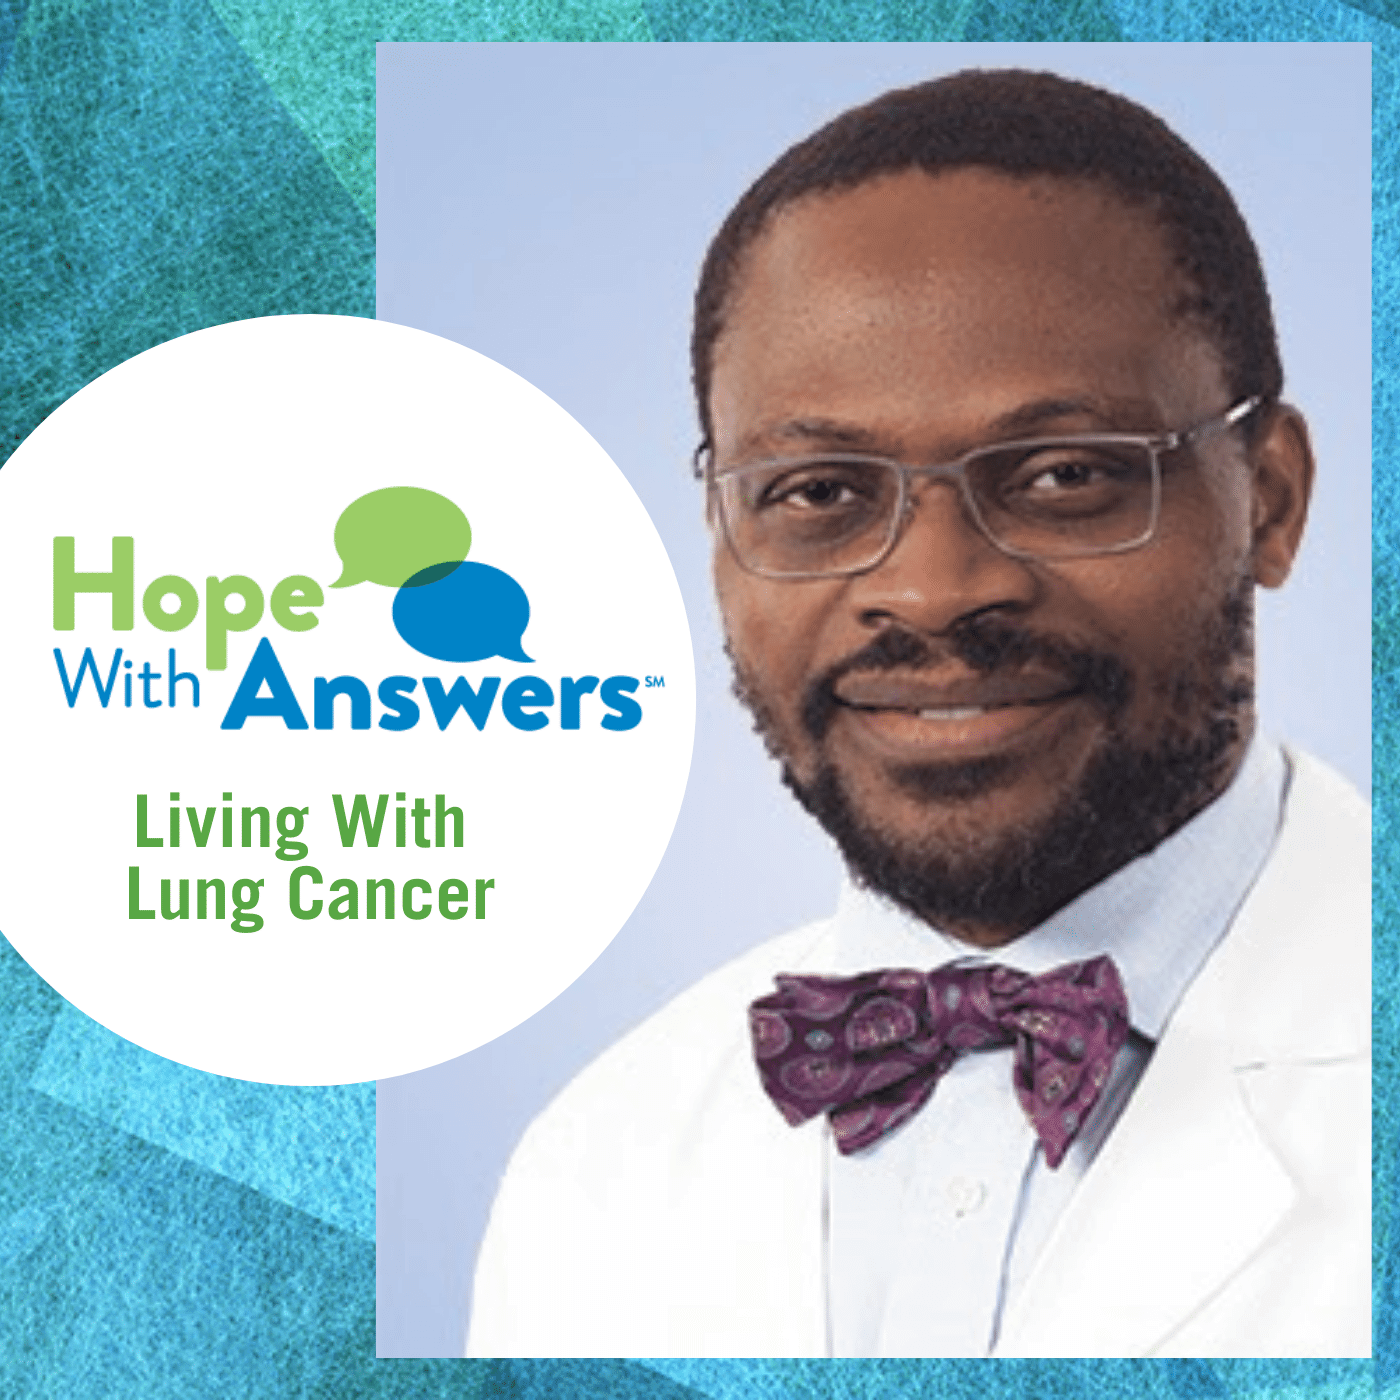 Dr Raymond Osarogiagbon guest on this podcast episode